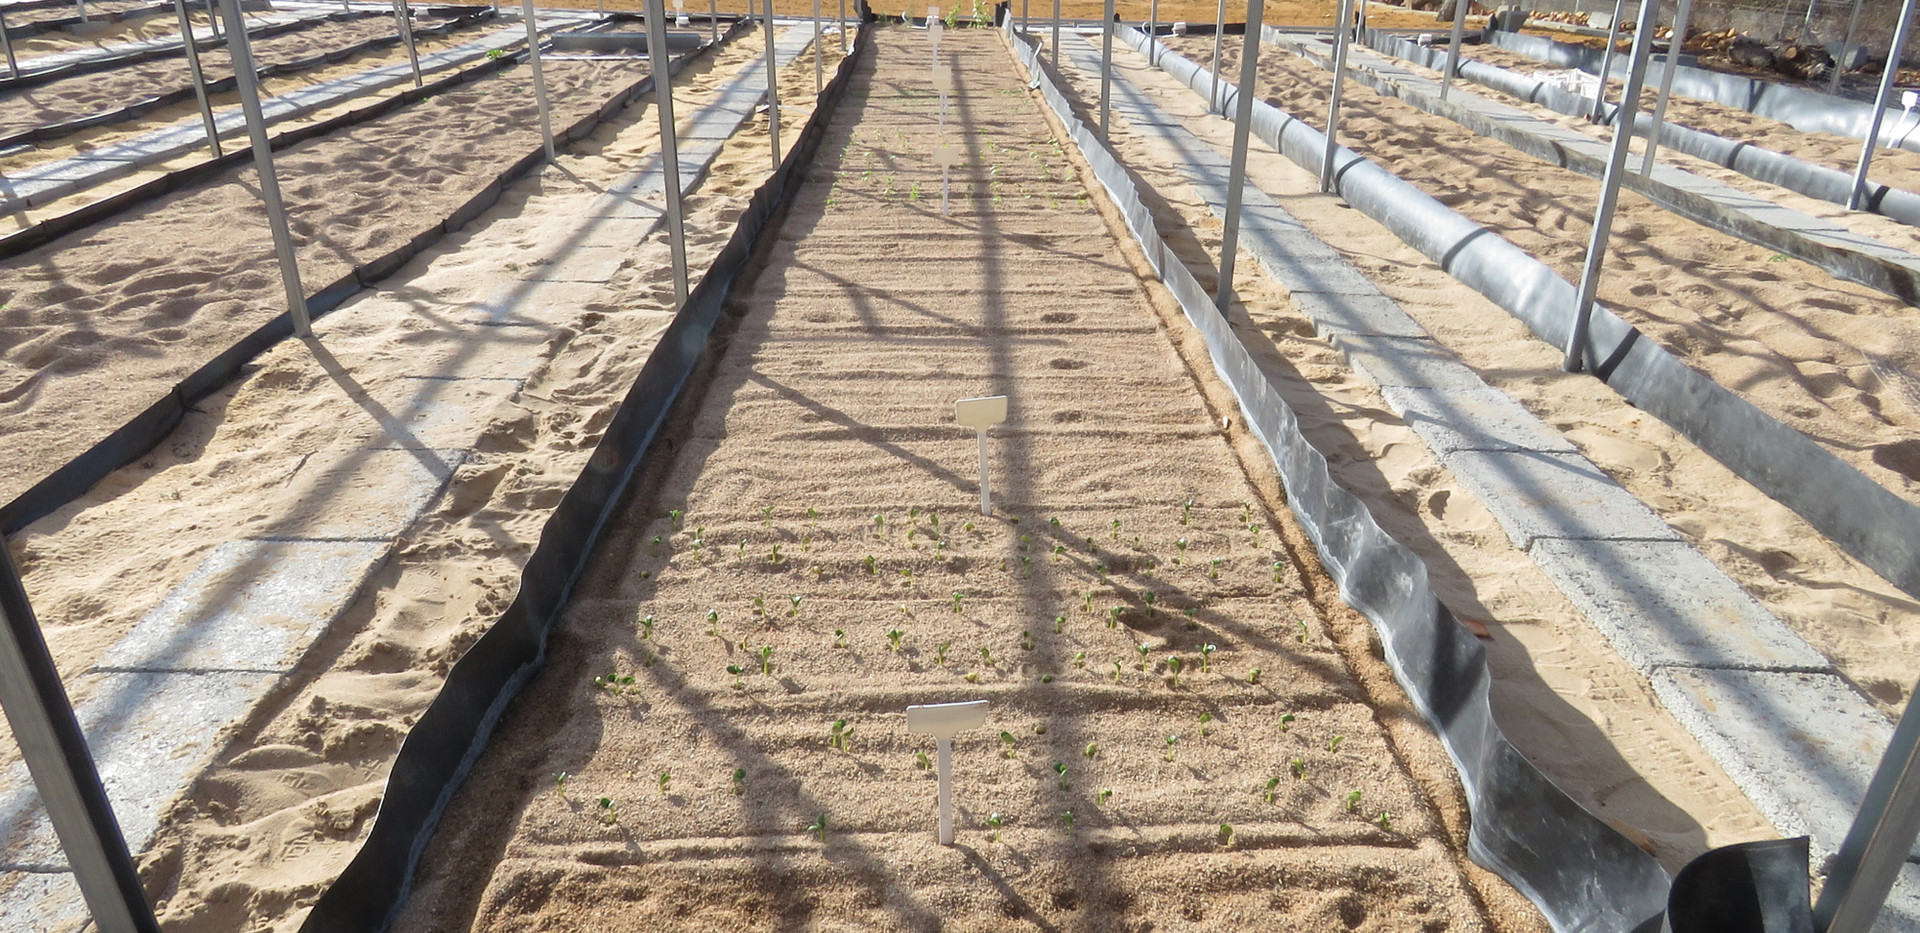 hydroponic sand flow beds